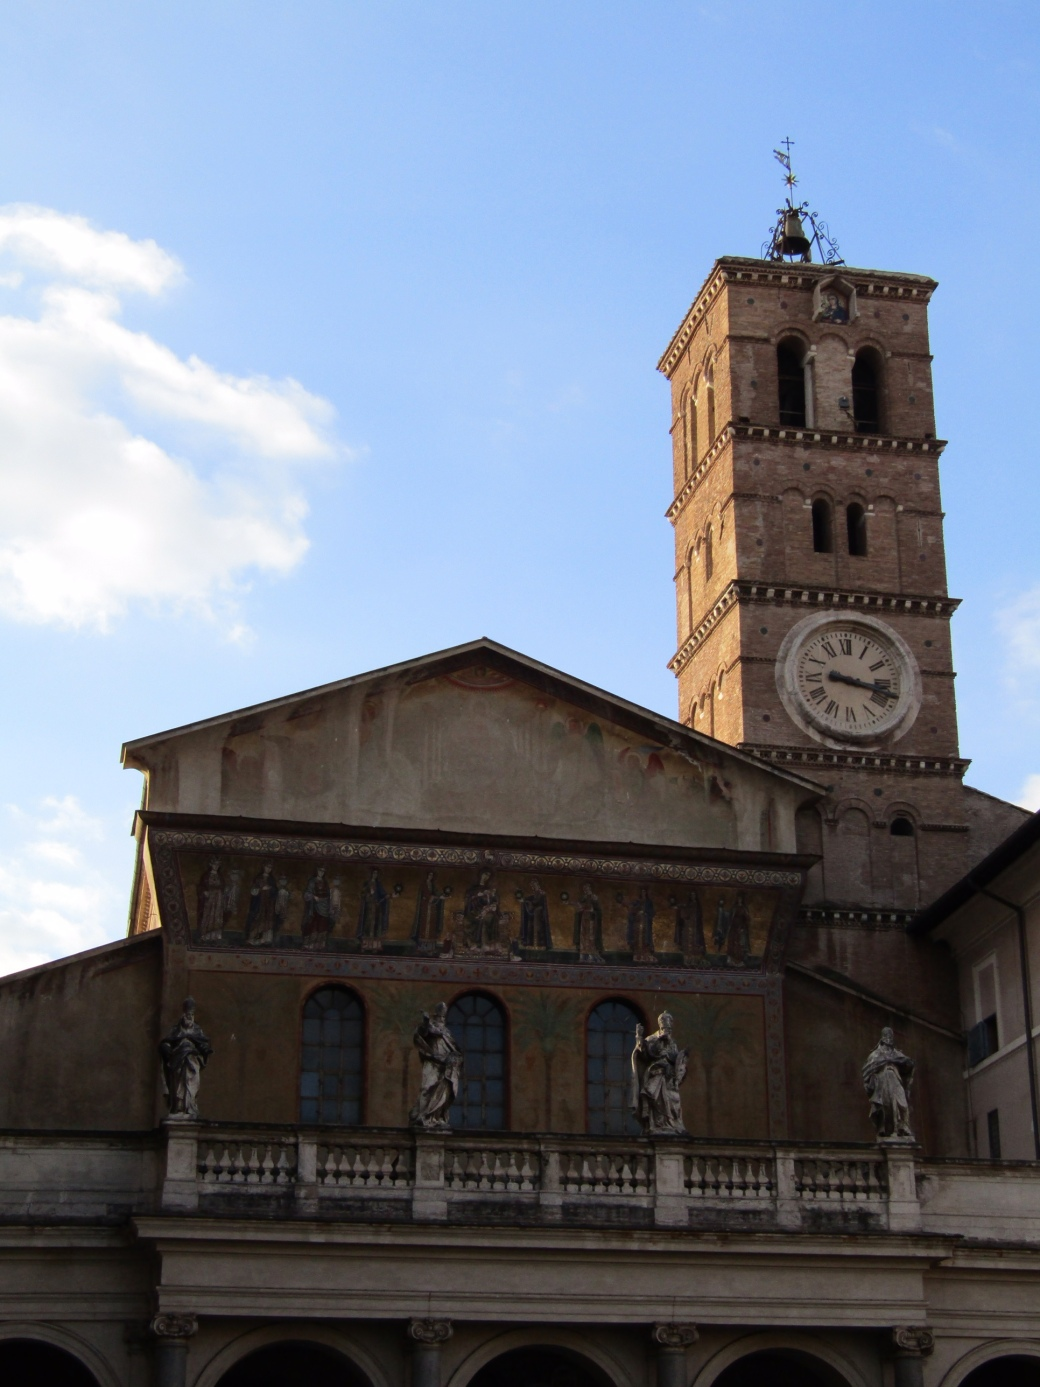 The Basilica of Santa Maria in Trastevere is one of Rome's oldest churches. The public square in front of the church is one of the charming Trastevere districts liveliest community spaces.